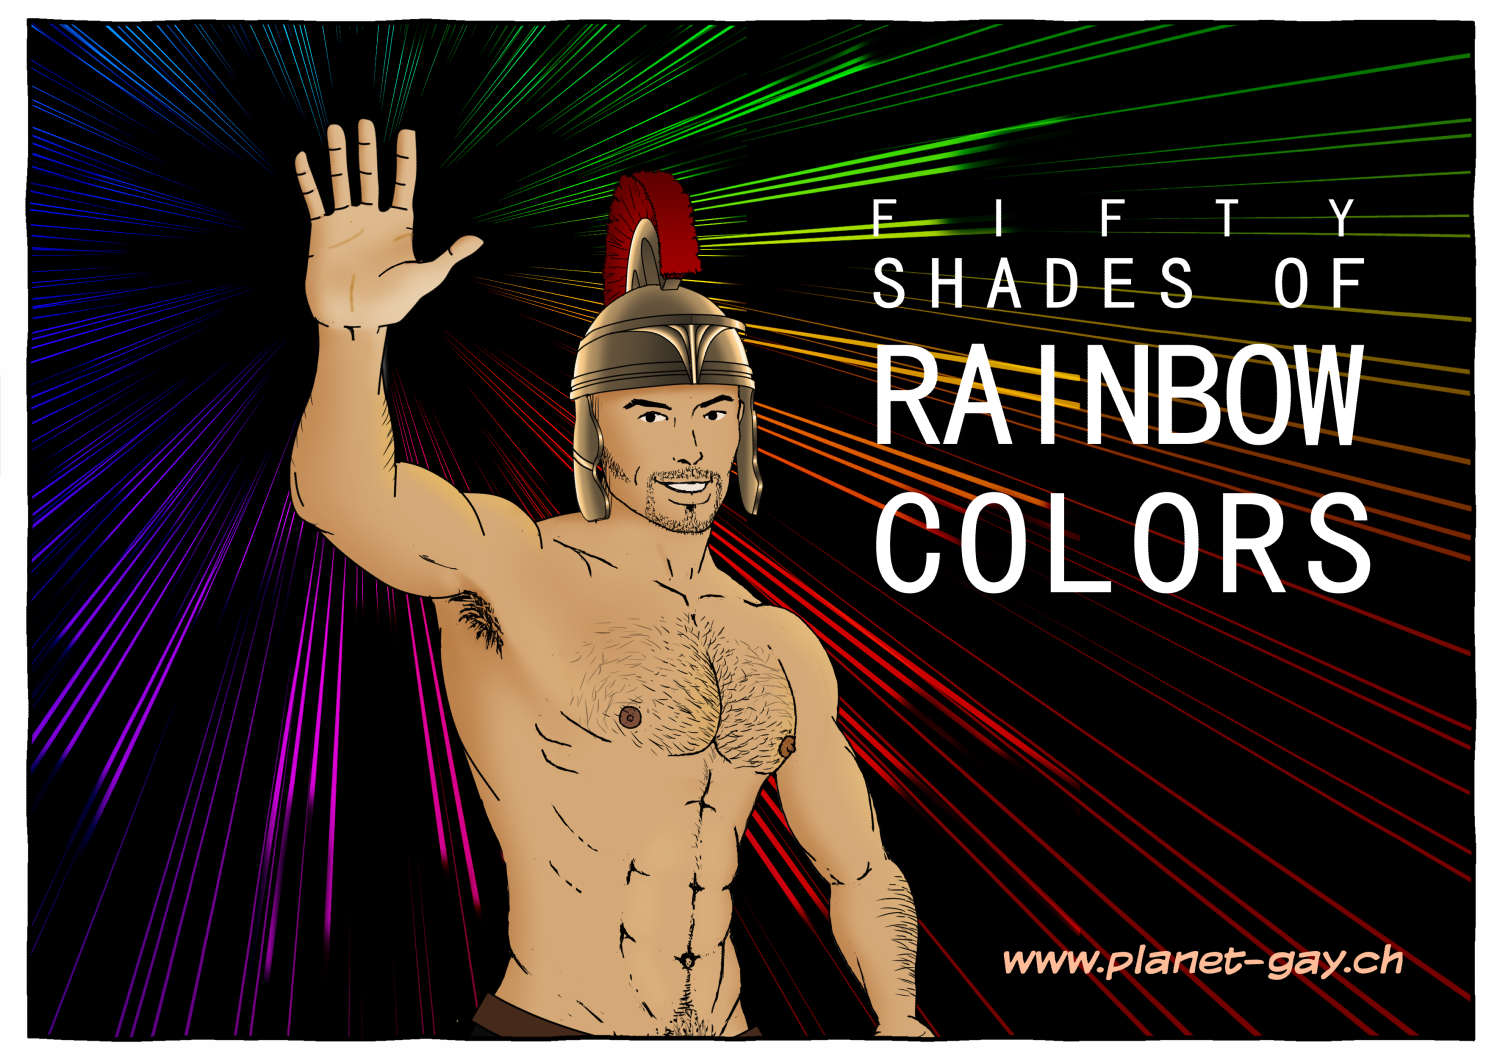 fifty shades of Rainbowcolors